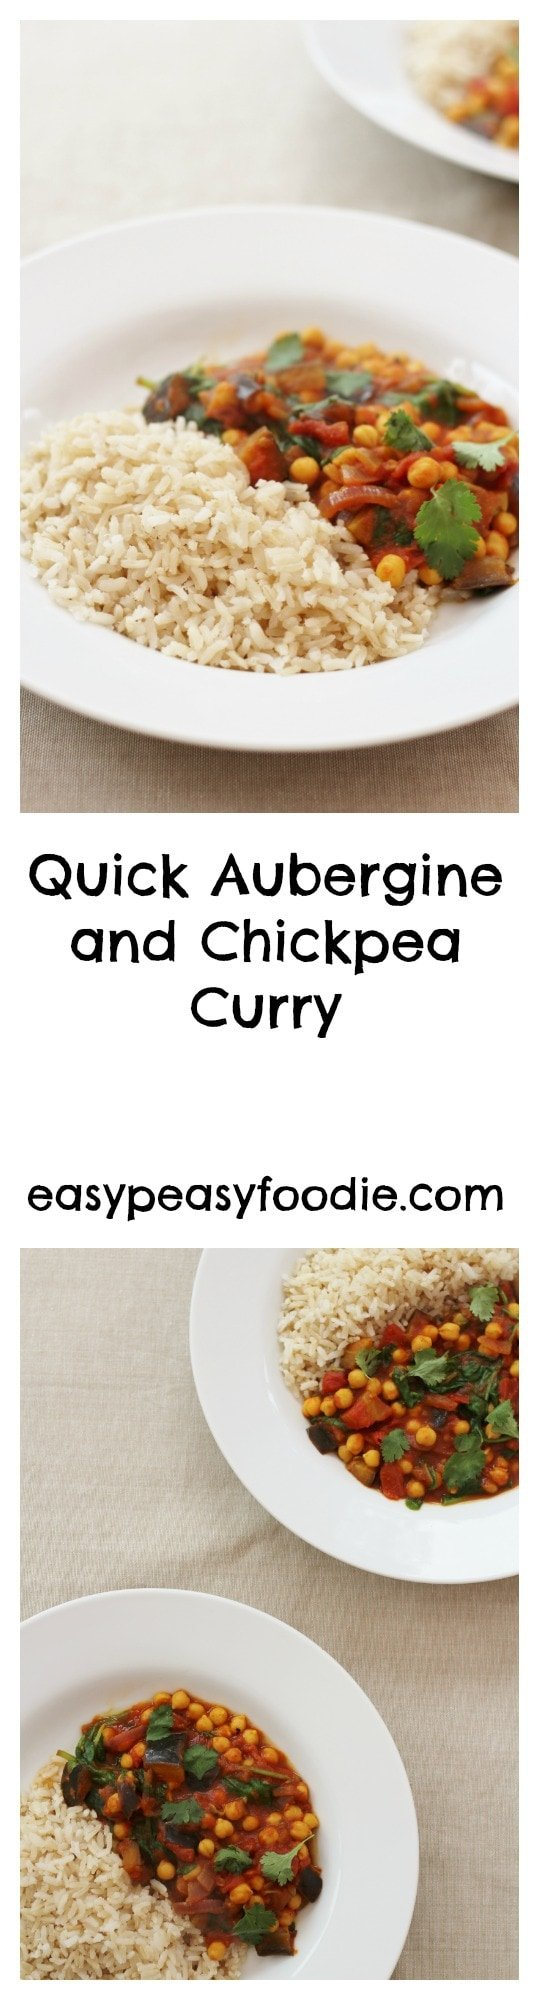 Quick Aubergine and Chickpea Curry - pinnable image for Pinterest